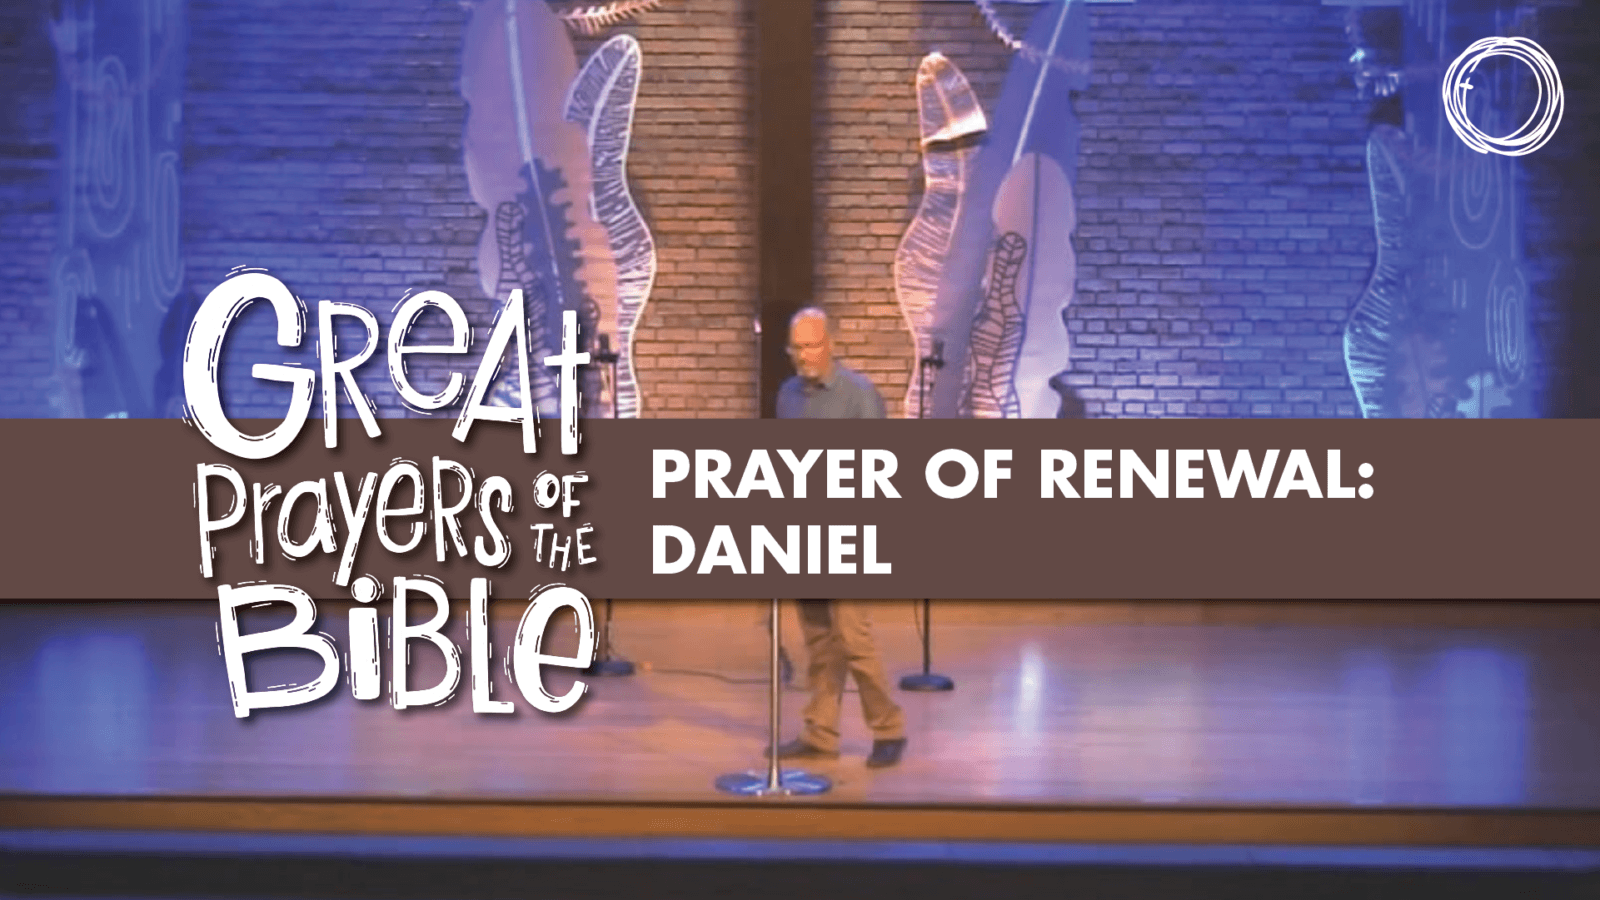 Prayer of Renewal: Daniel